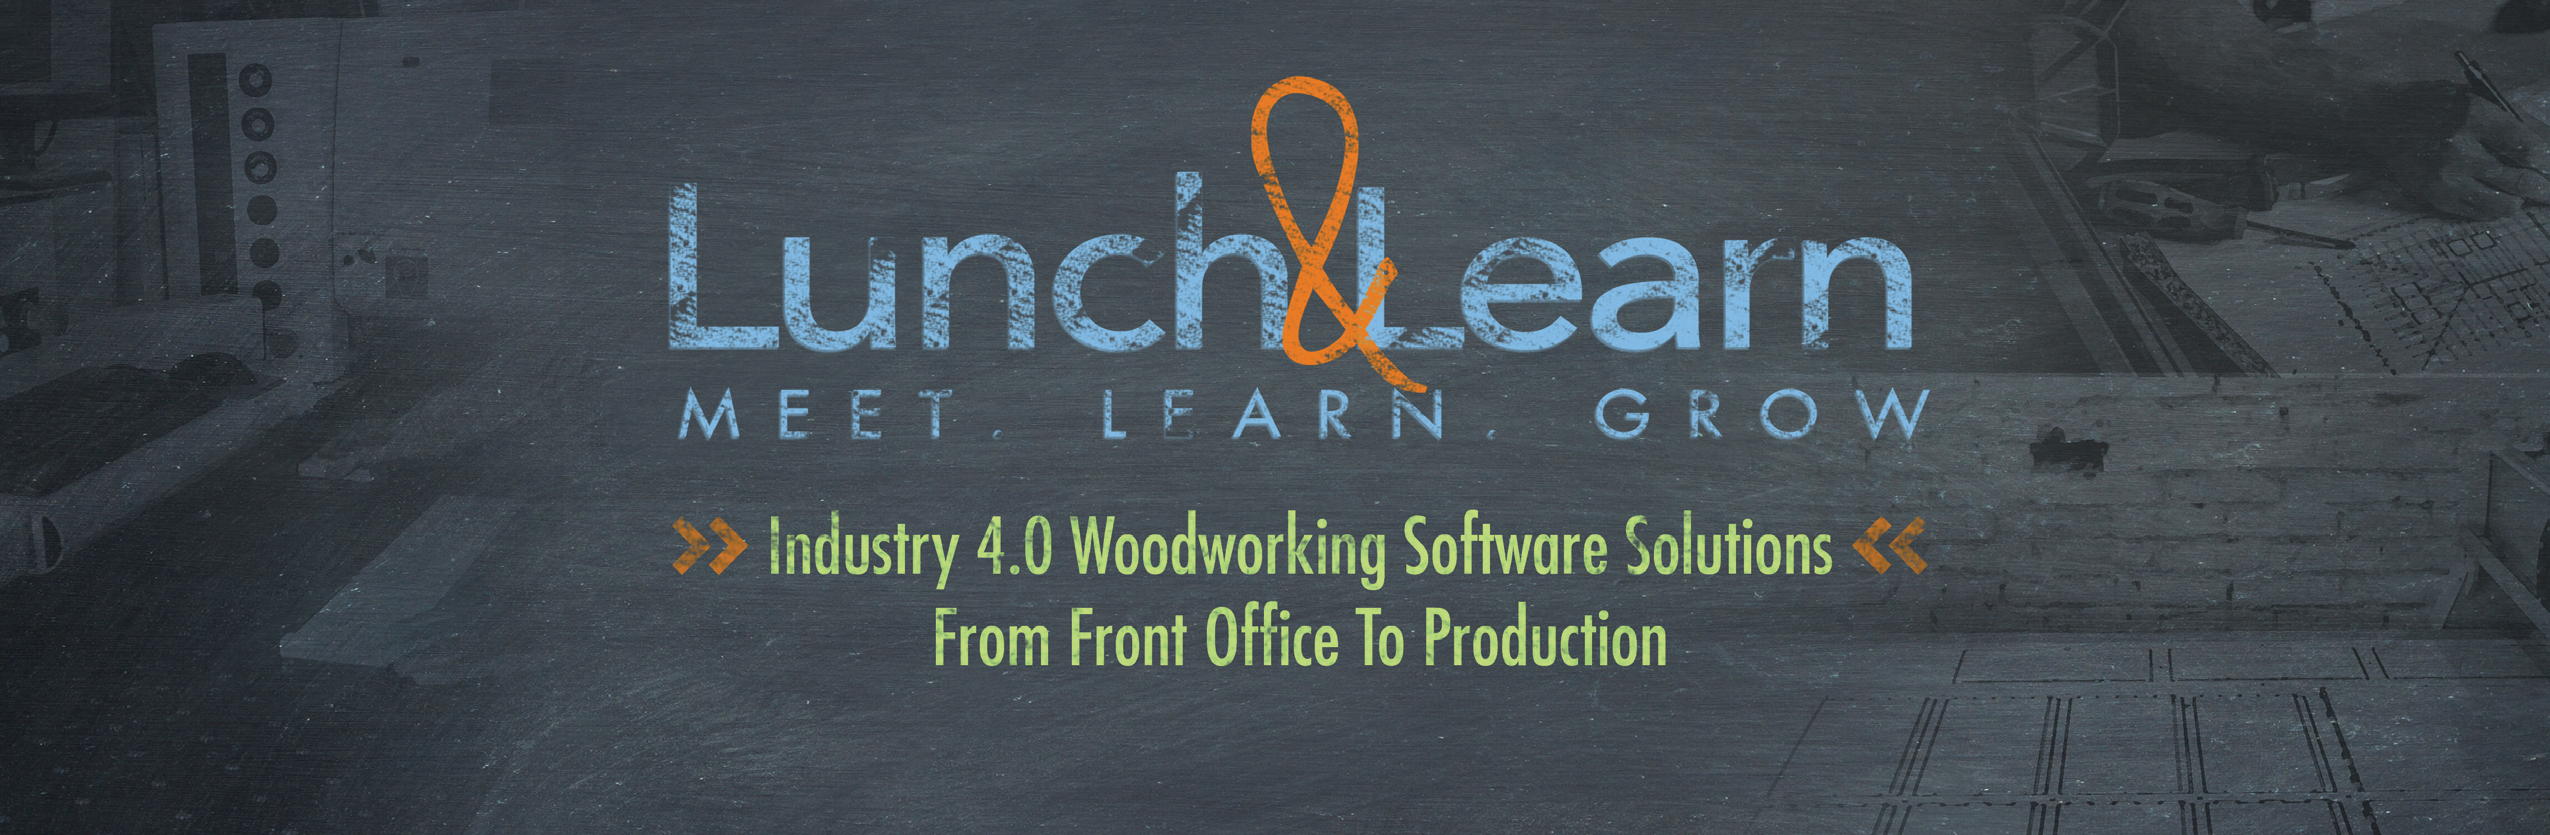 Lunchandlearn-header-rsa